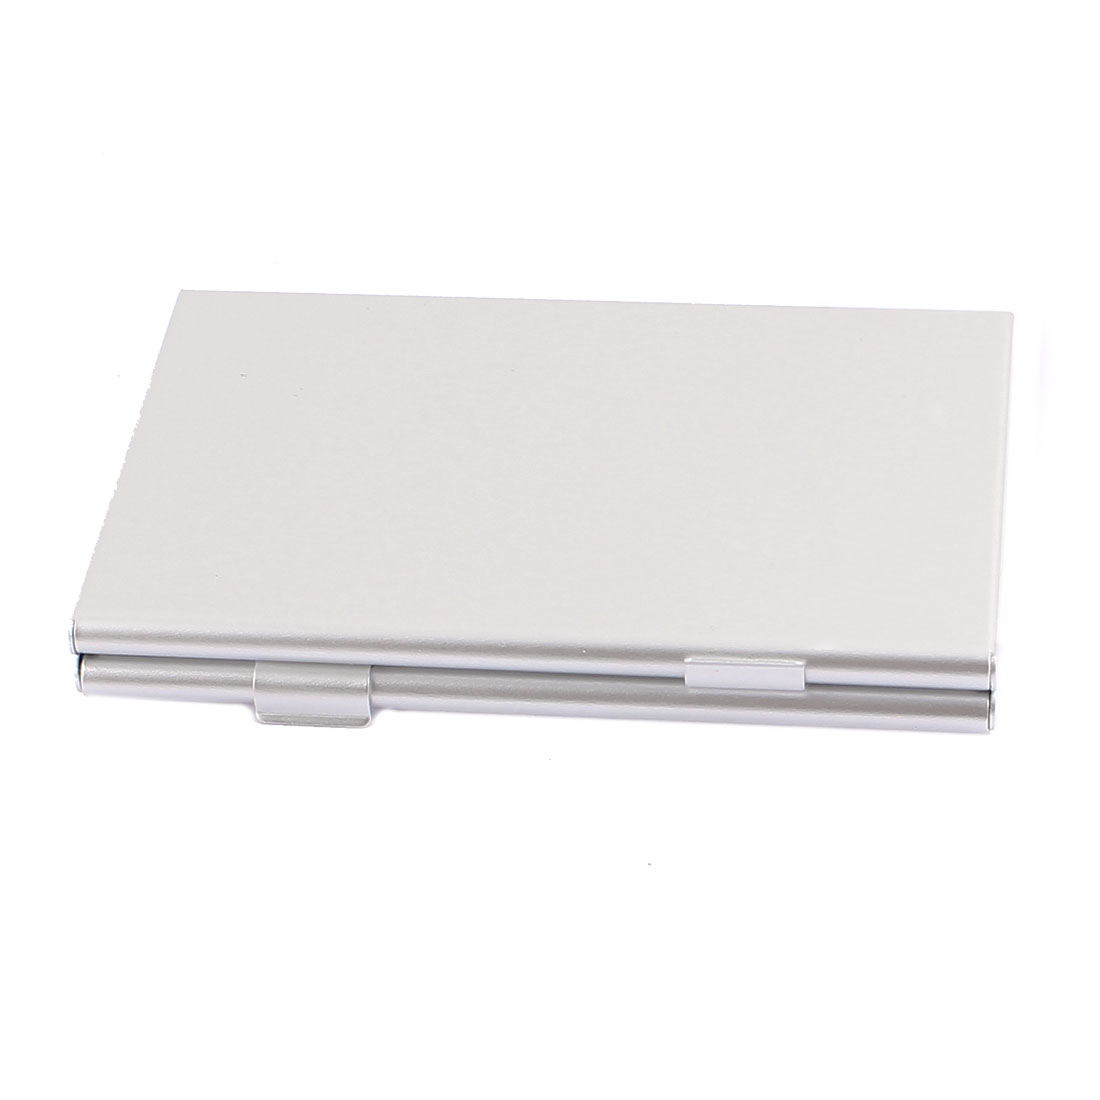 Aluminum Alloy 6-Slot Micro SD Memory Card Storage Box Container Holder Silver Tone